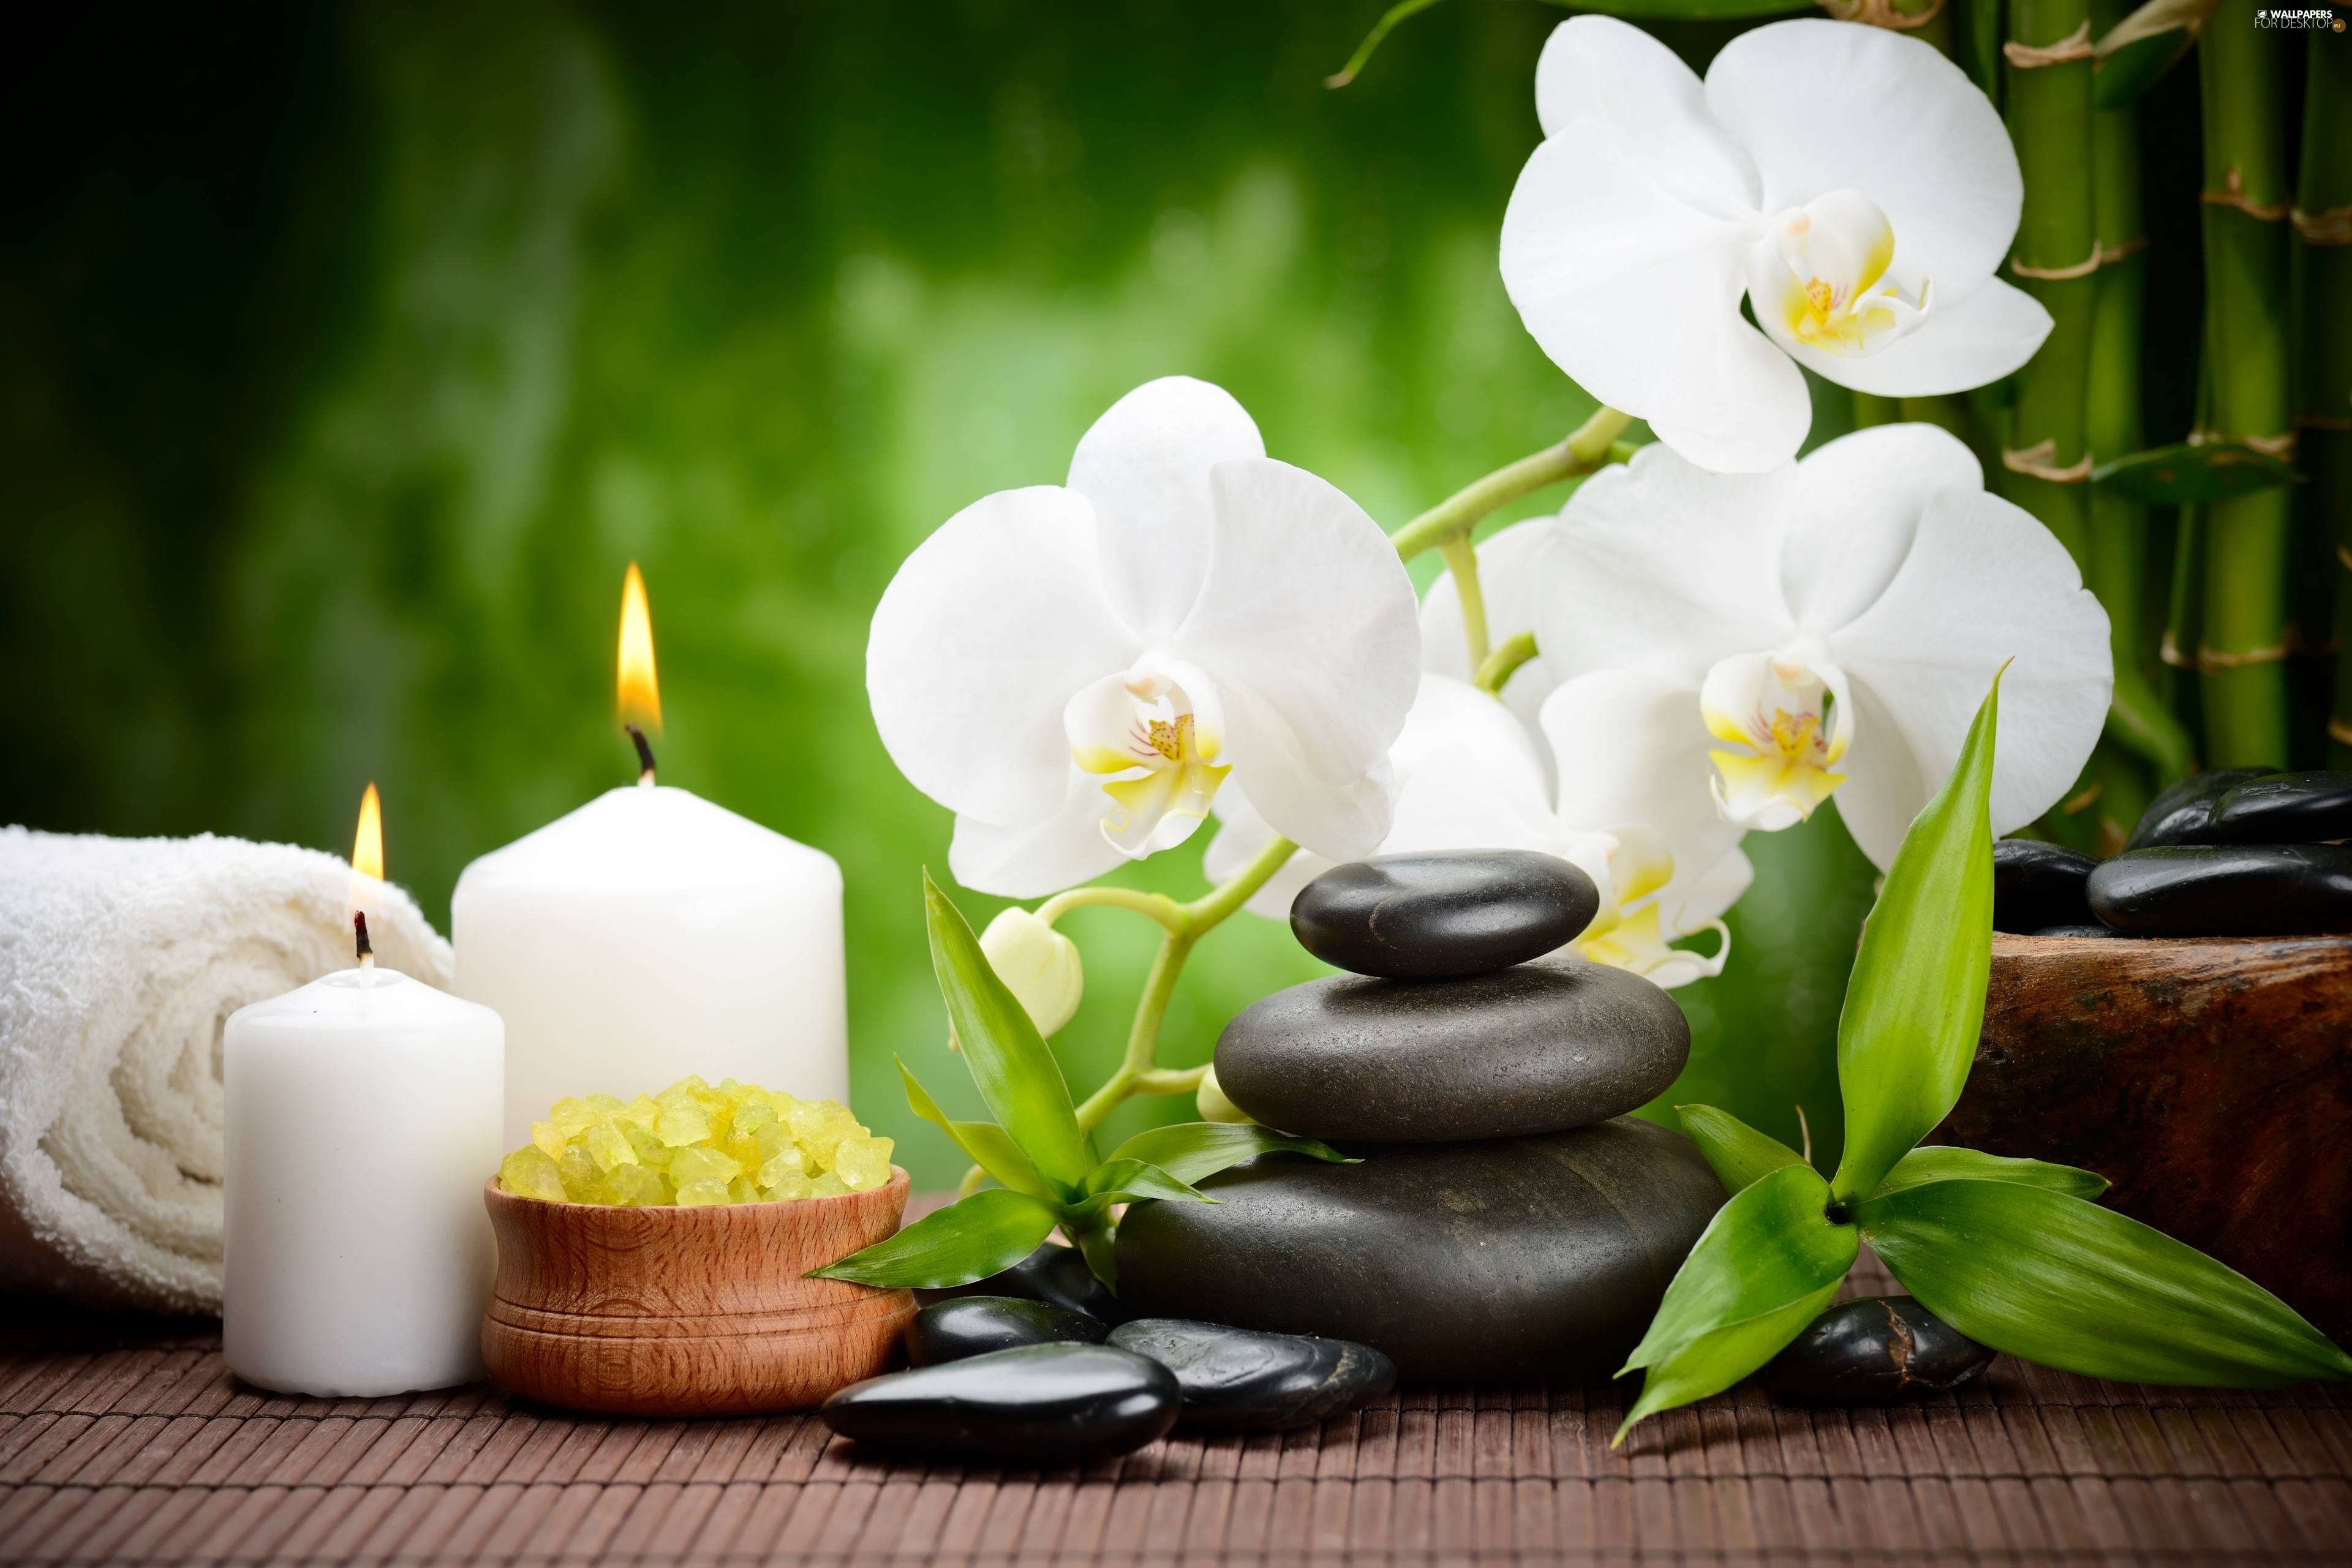 Spa, orchids, salt, composition, Flowers, Stones, Candles